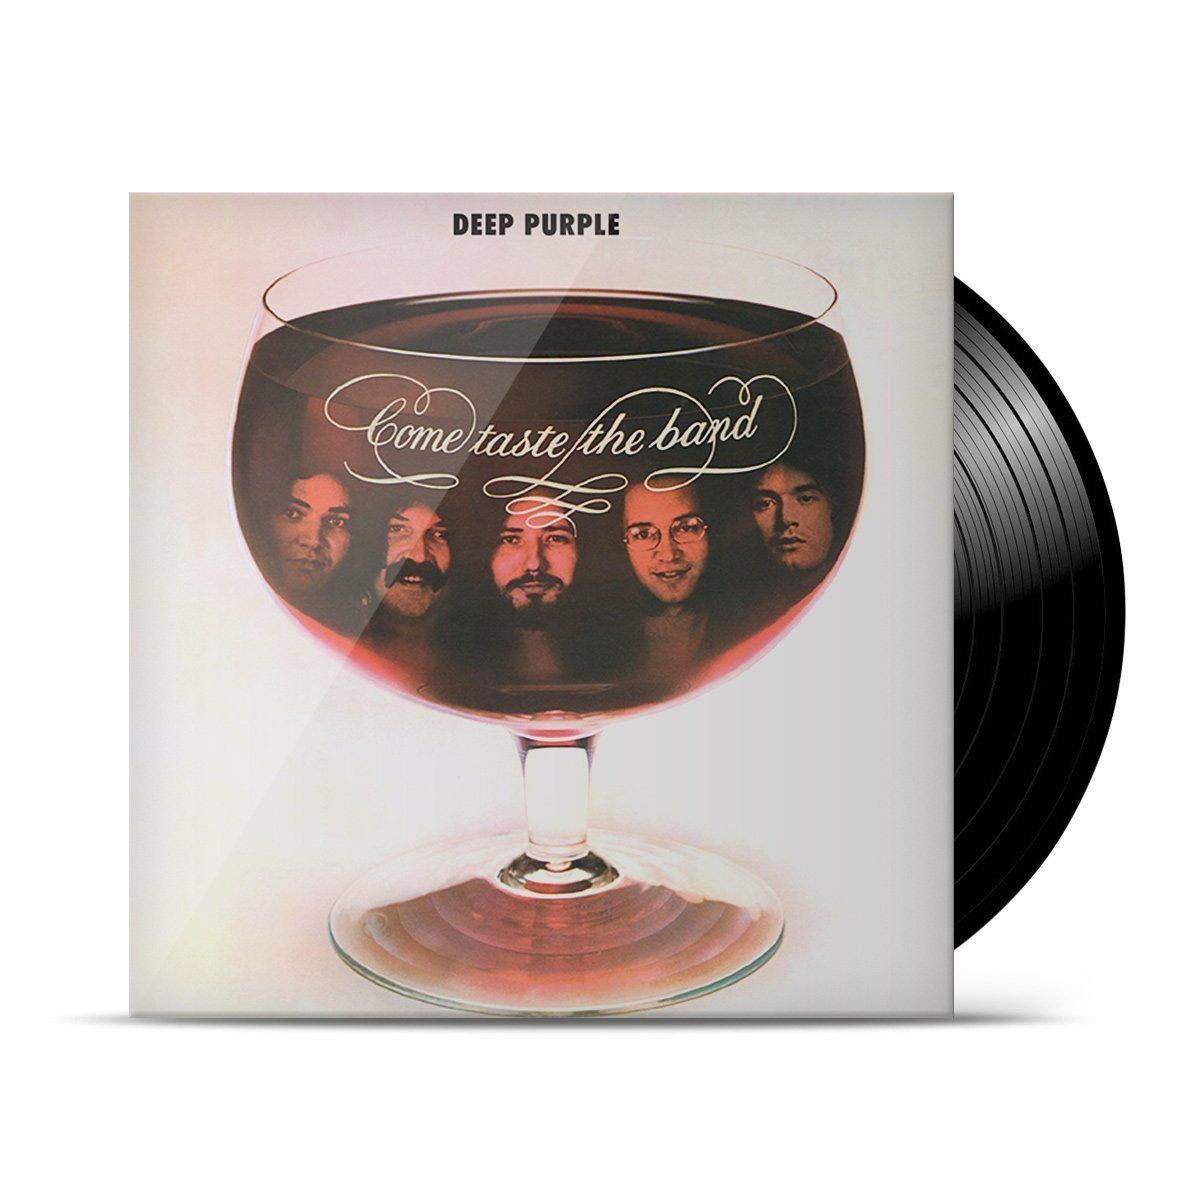 LP Deep Purple Come Taste The Band  - bandUP Store Marketplace